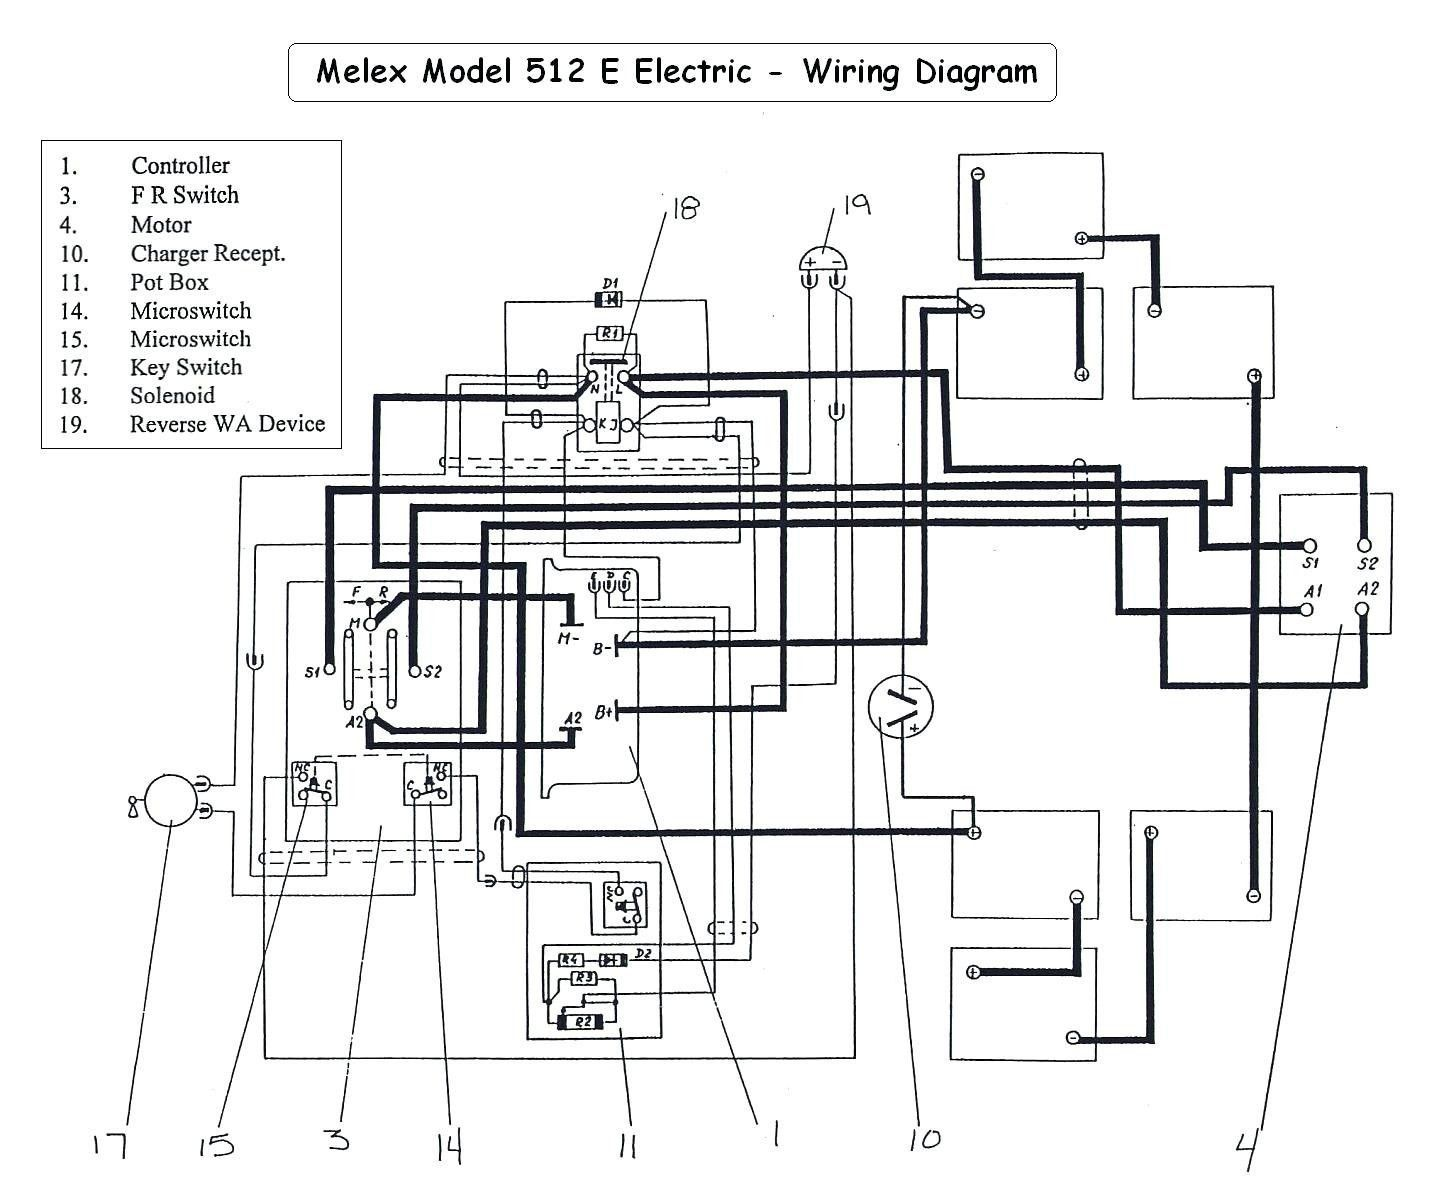 1992 Ez Go Wiring Diagram Golf Carts Electric Golf Cart Golf Cart Parts